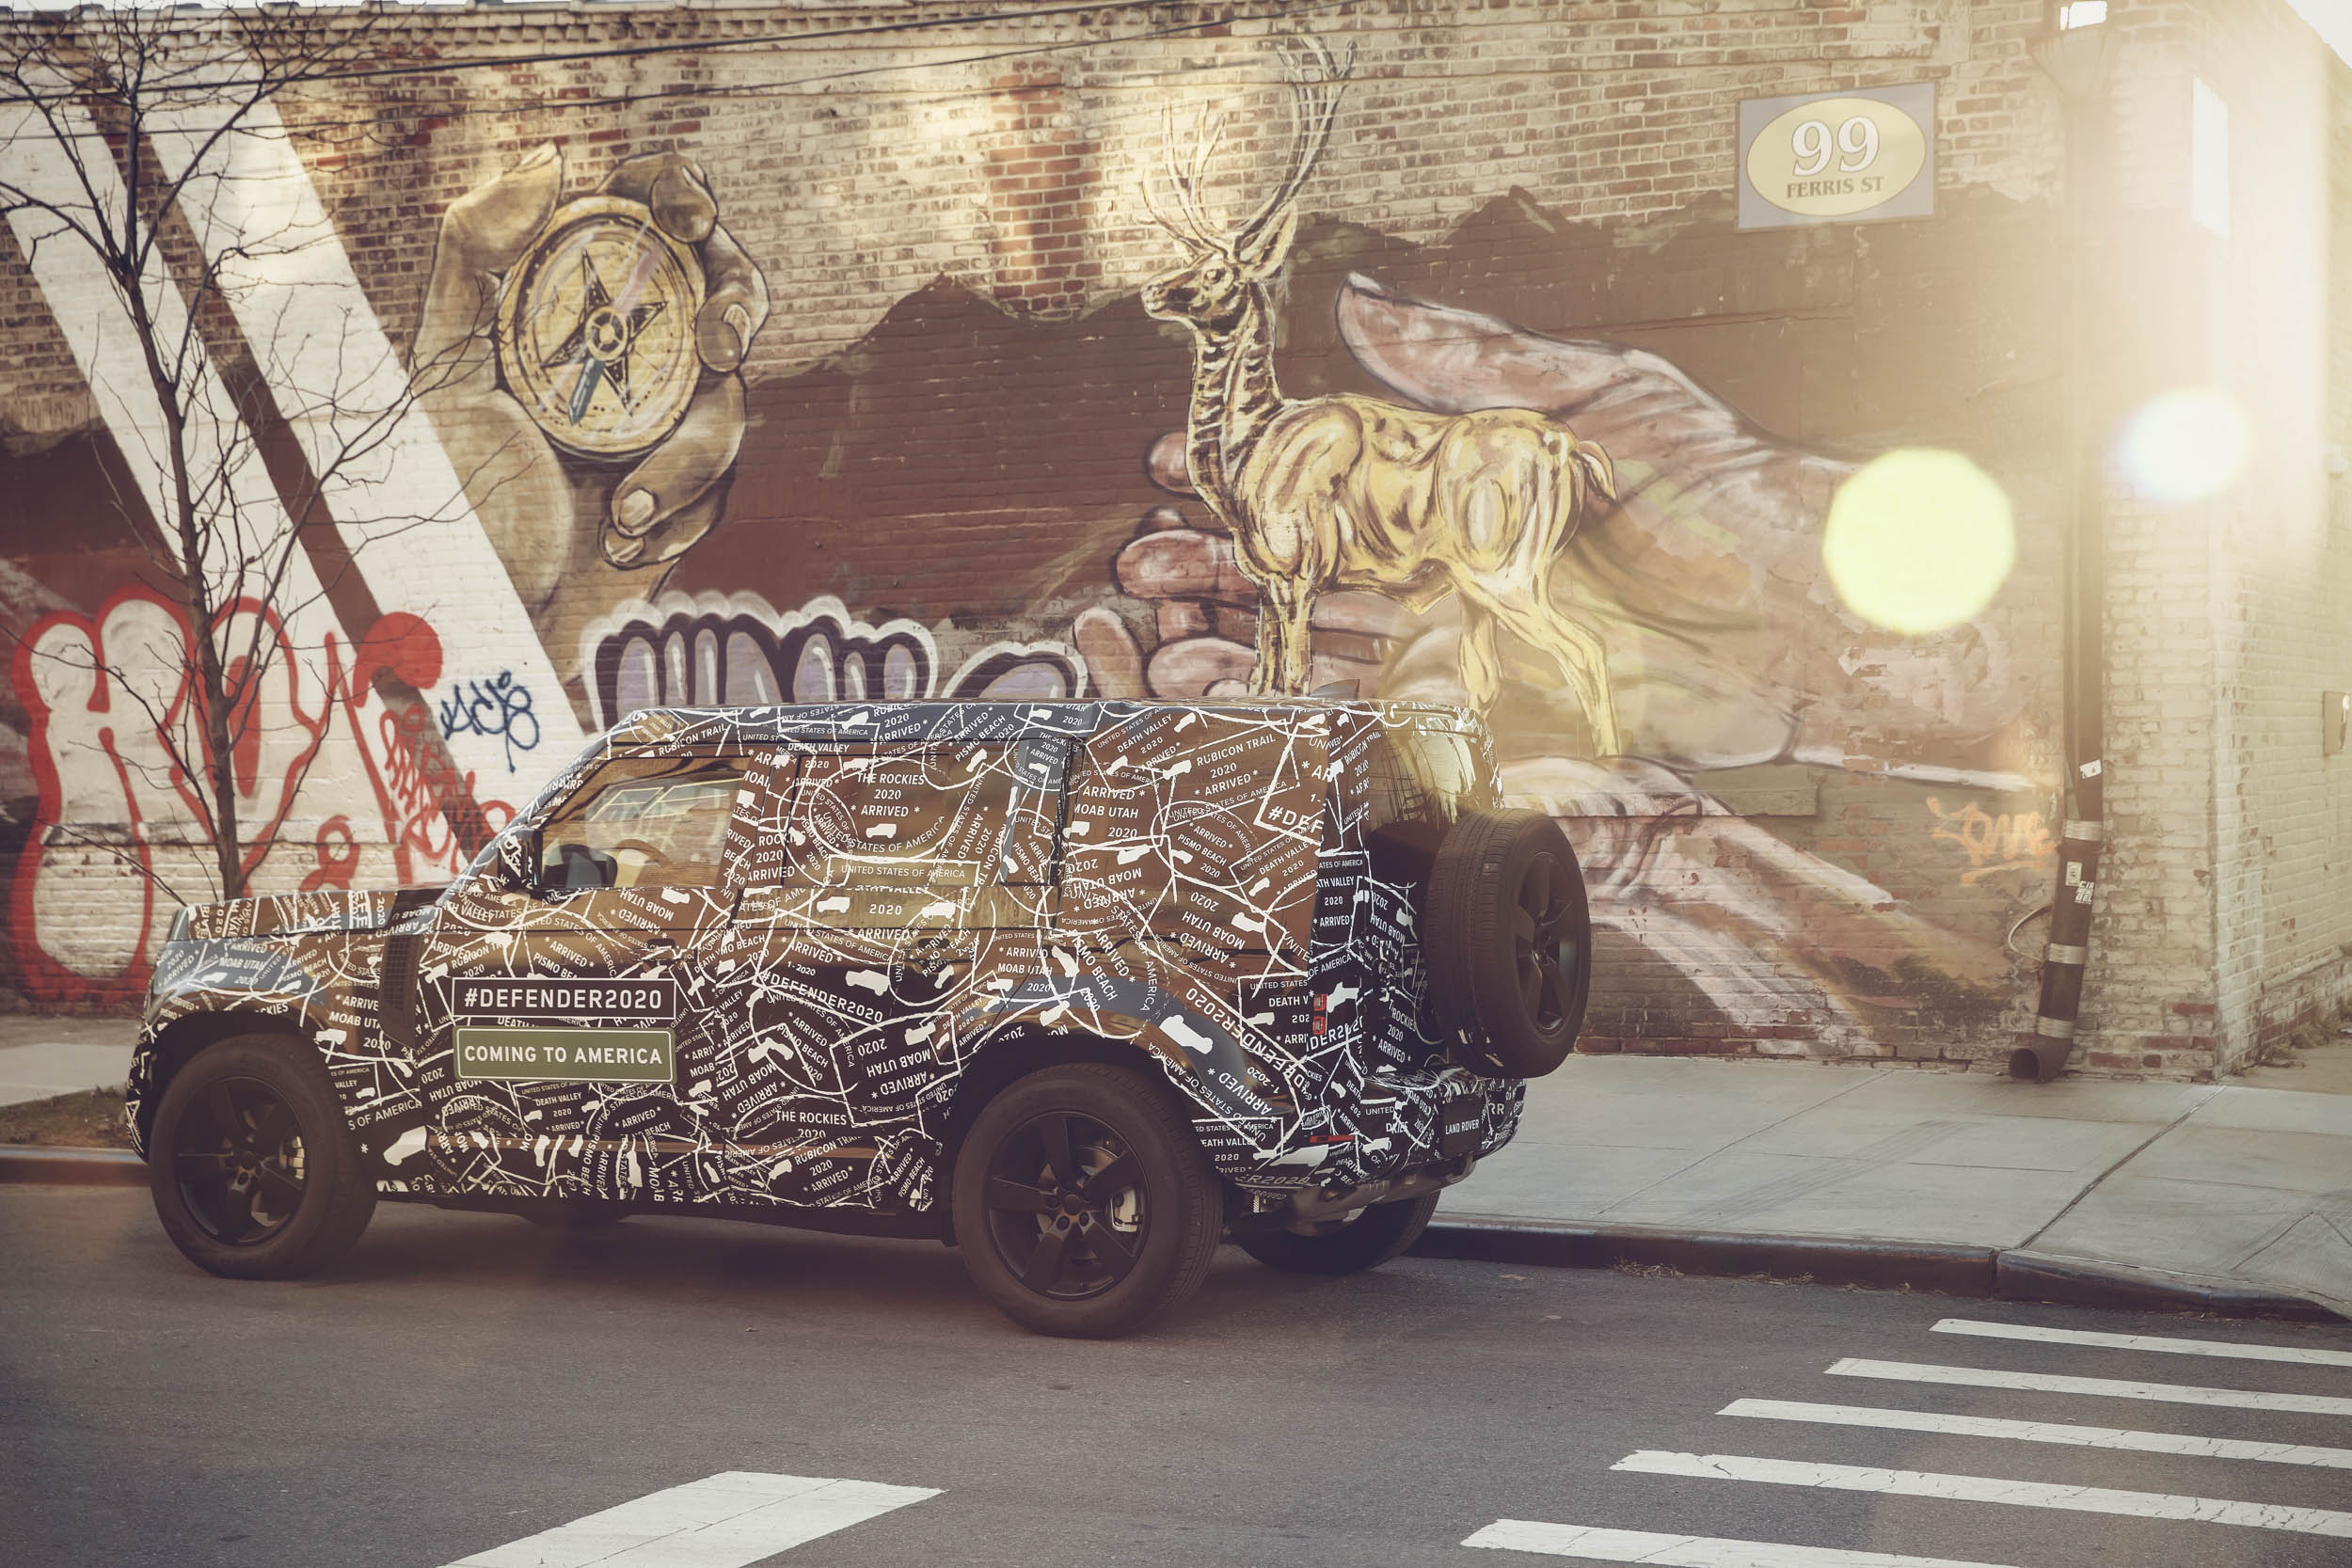 2020 Land Rover Defender in front of some NYC Graffiti